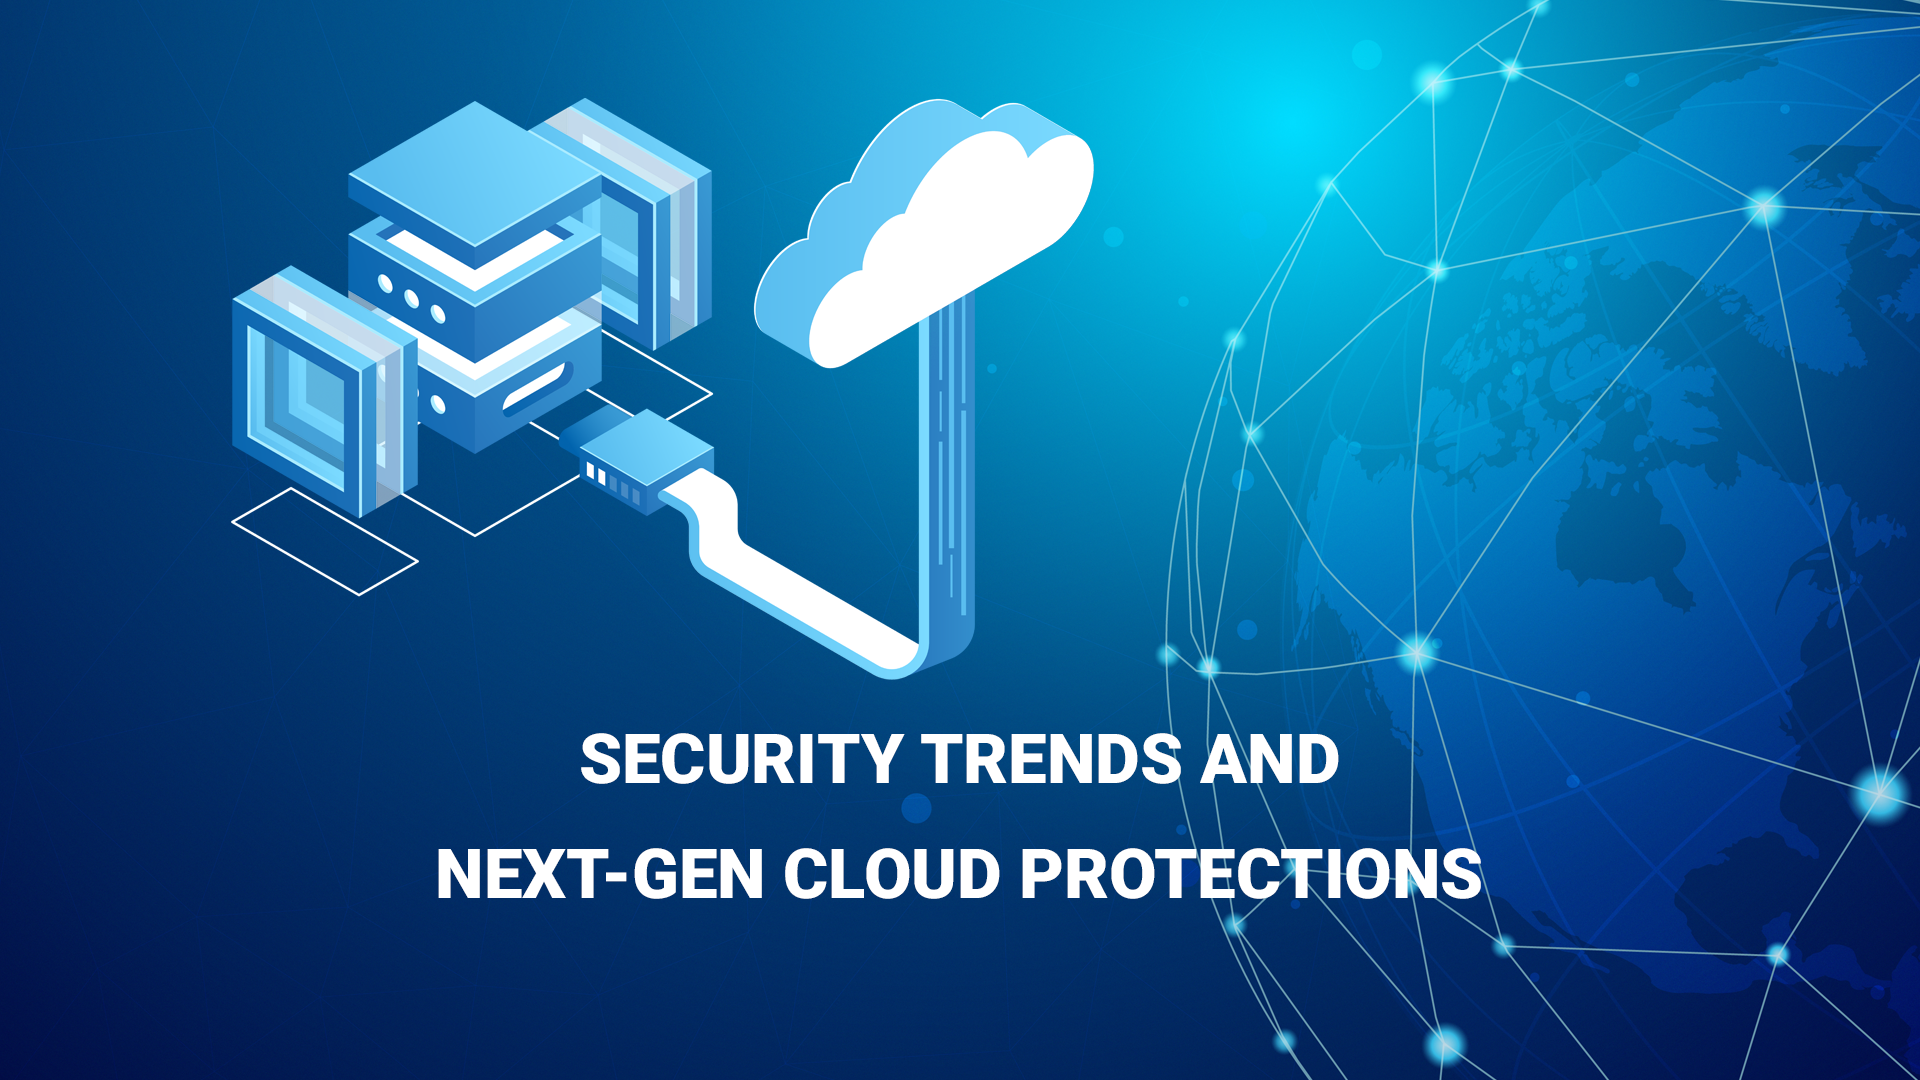 Security Trends and Next-Gen Cloud Protections